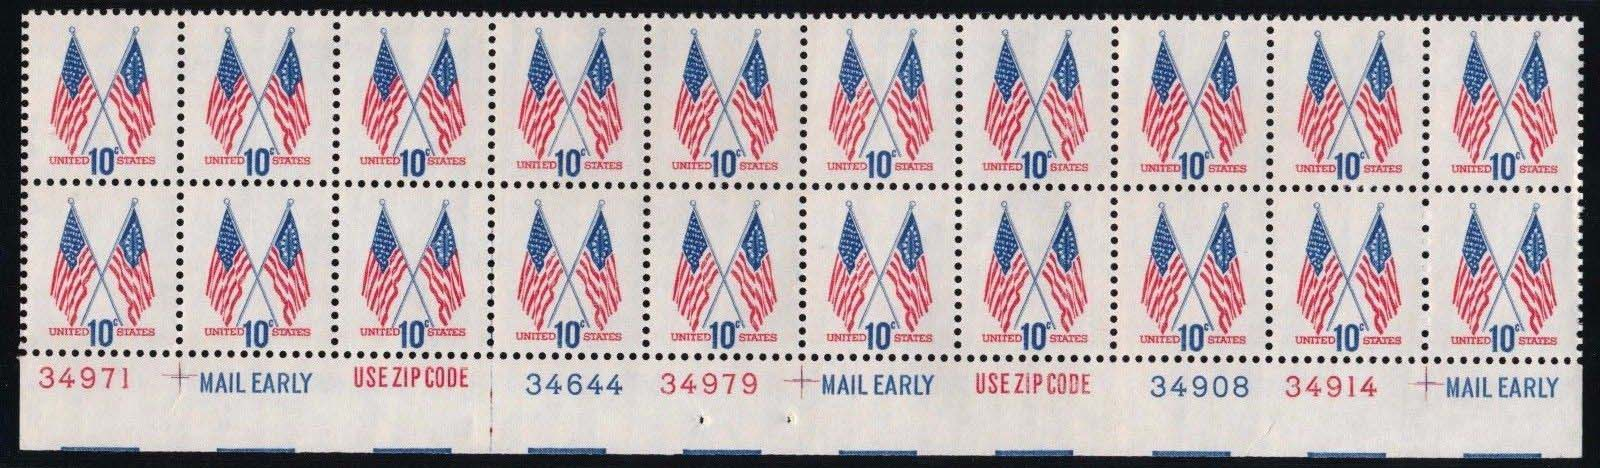 "Scott 1509 Plate Block of 20 (10 cents) <p> <a href=""/images/USA-Scott-1509-PB-20.jpg""><font color=green><b>View the image</a></b></font>"